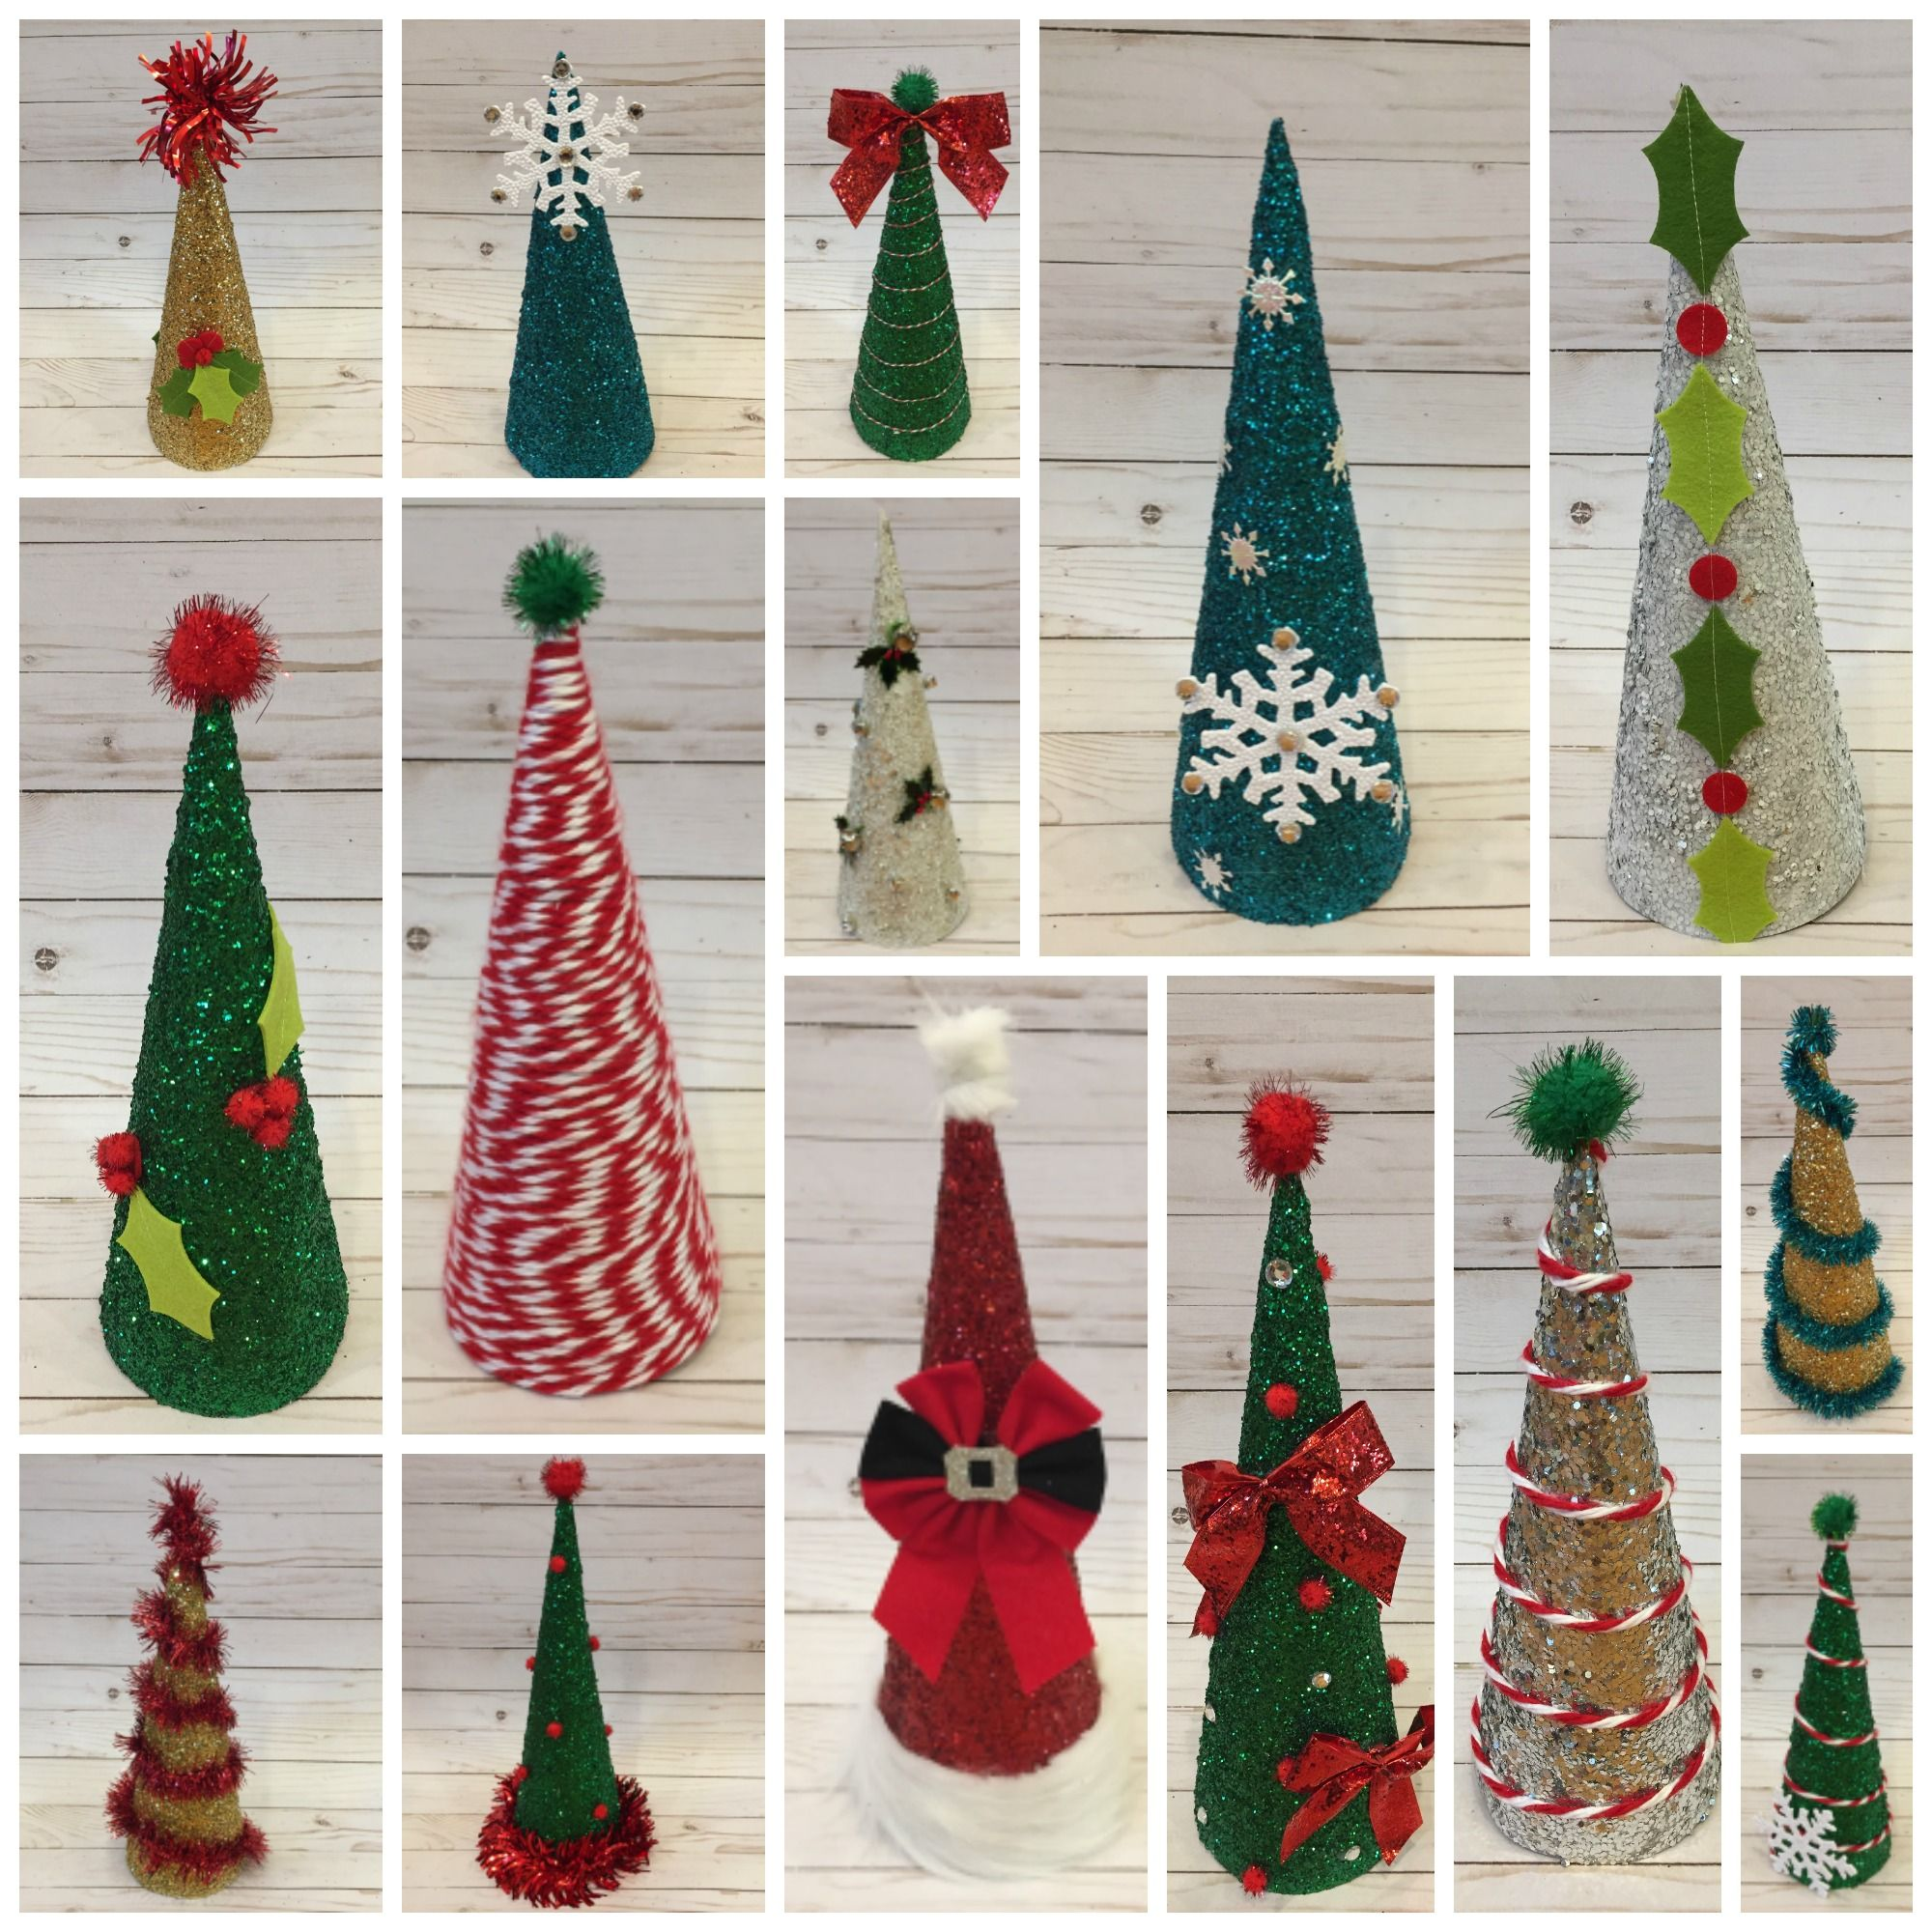 15 Cone Christmas Tree Designs To Make